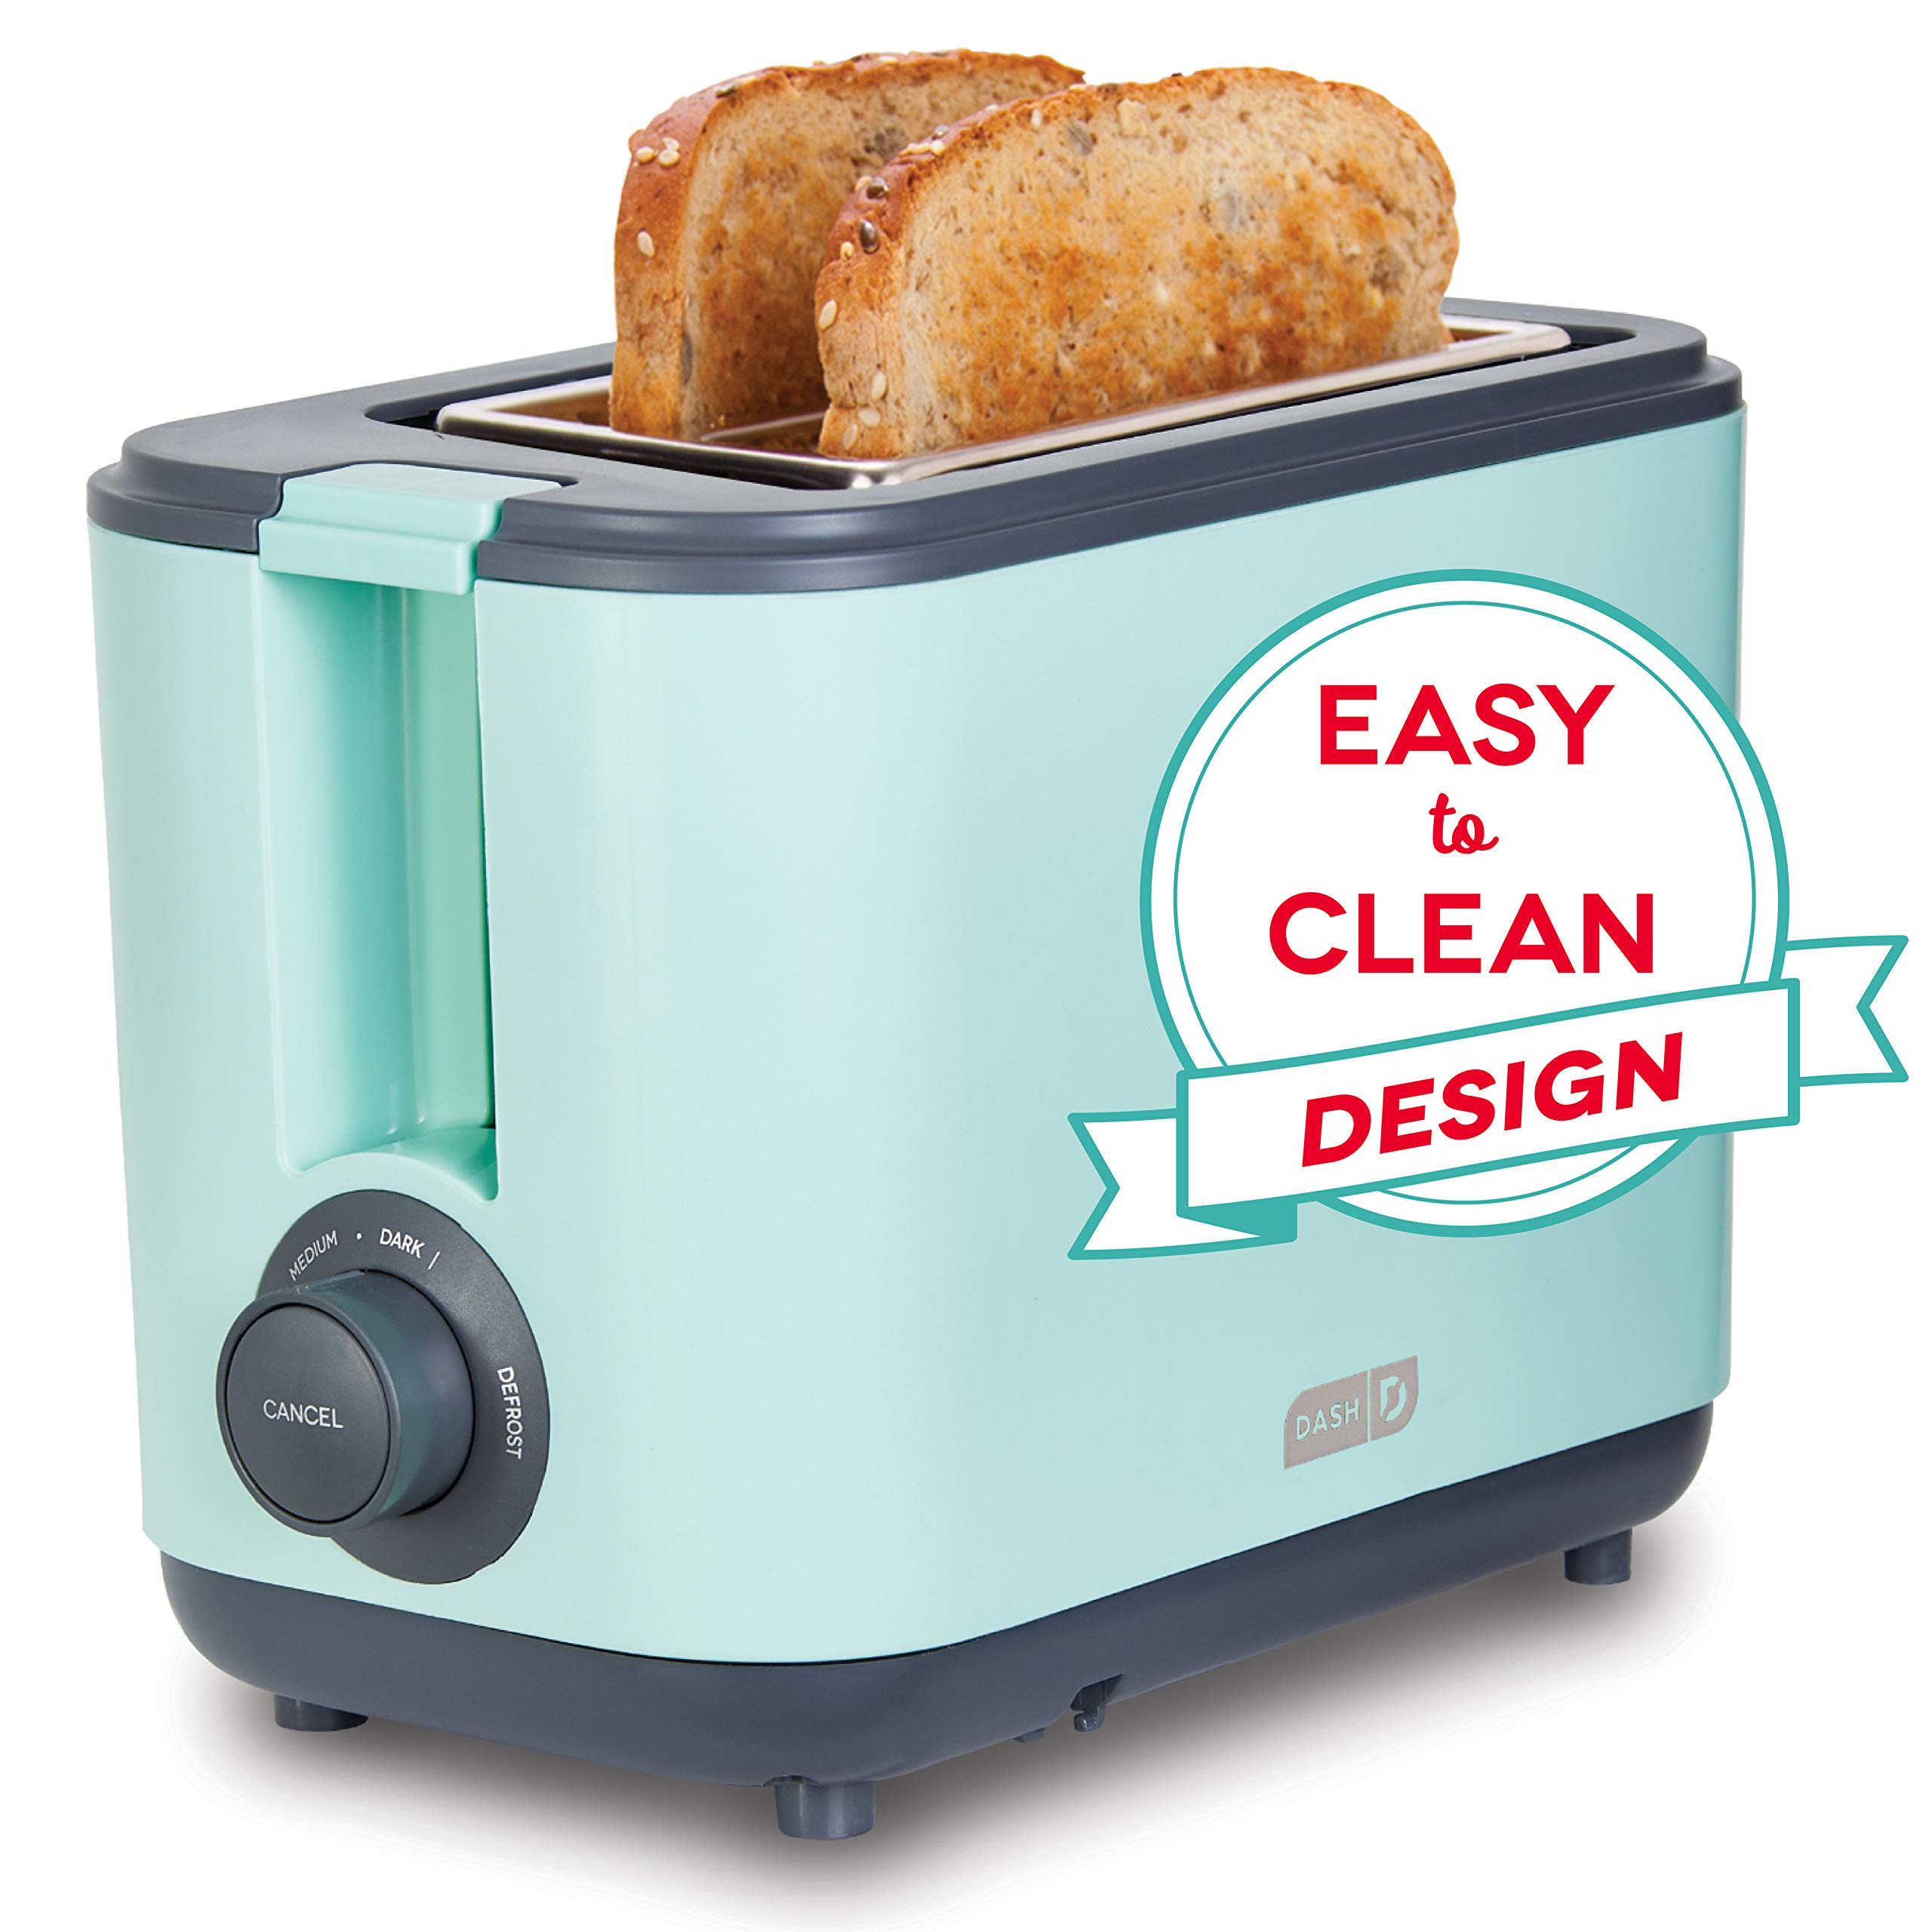 Dash DEZT001AQ 2 Slice Extra Wide Slot Easy Toaster with Cool Touch + Defrost Feature, for Bagels, Specialty Breads & other Baked Goods, Aqua by DASH